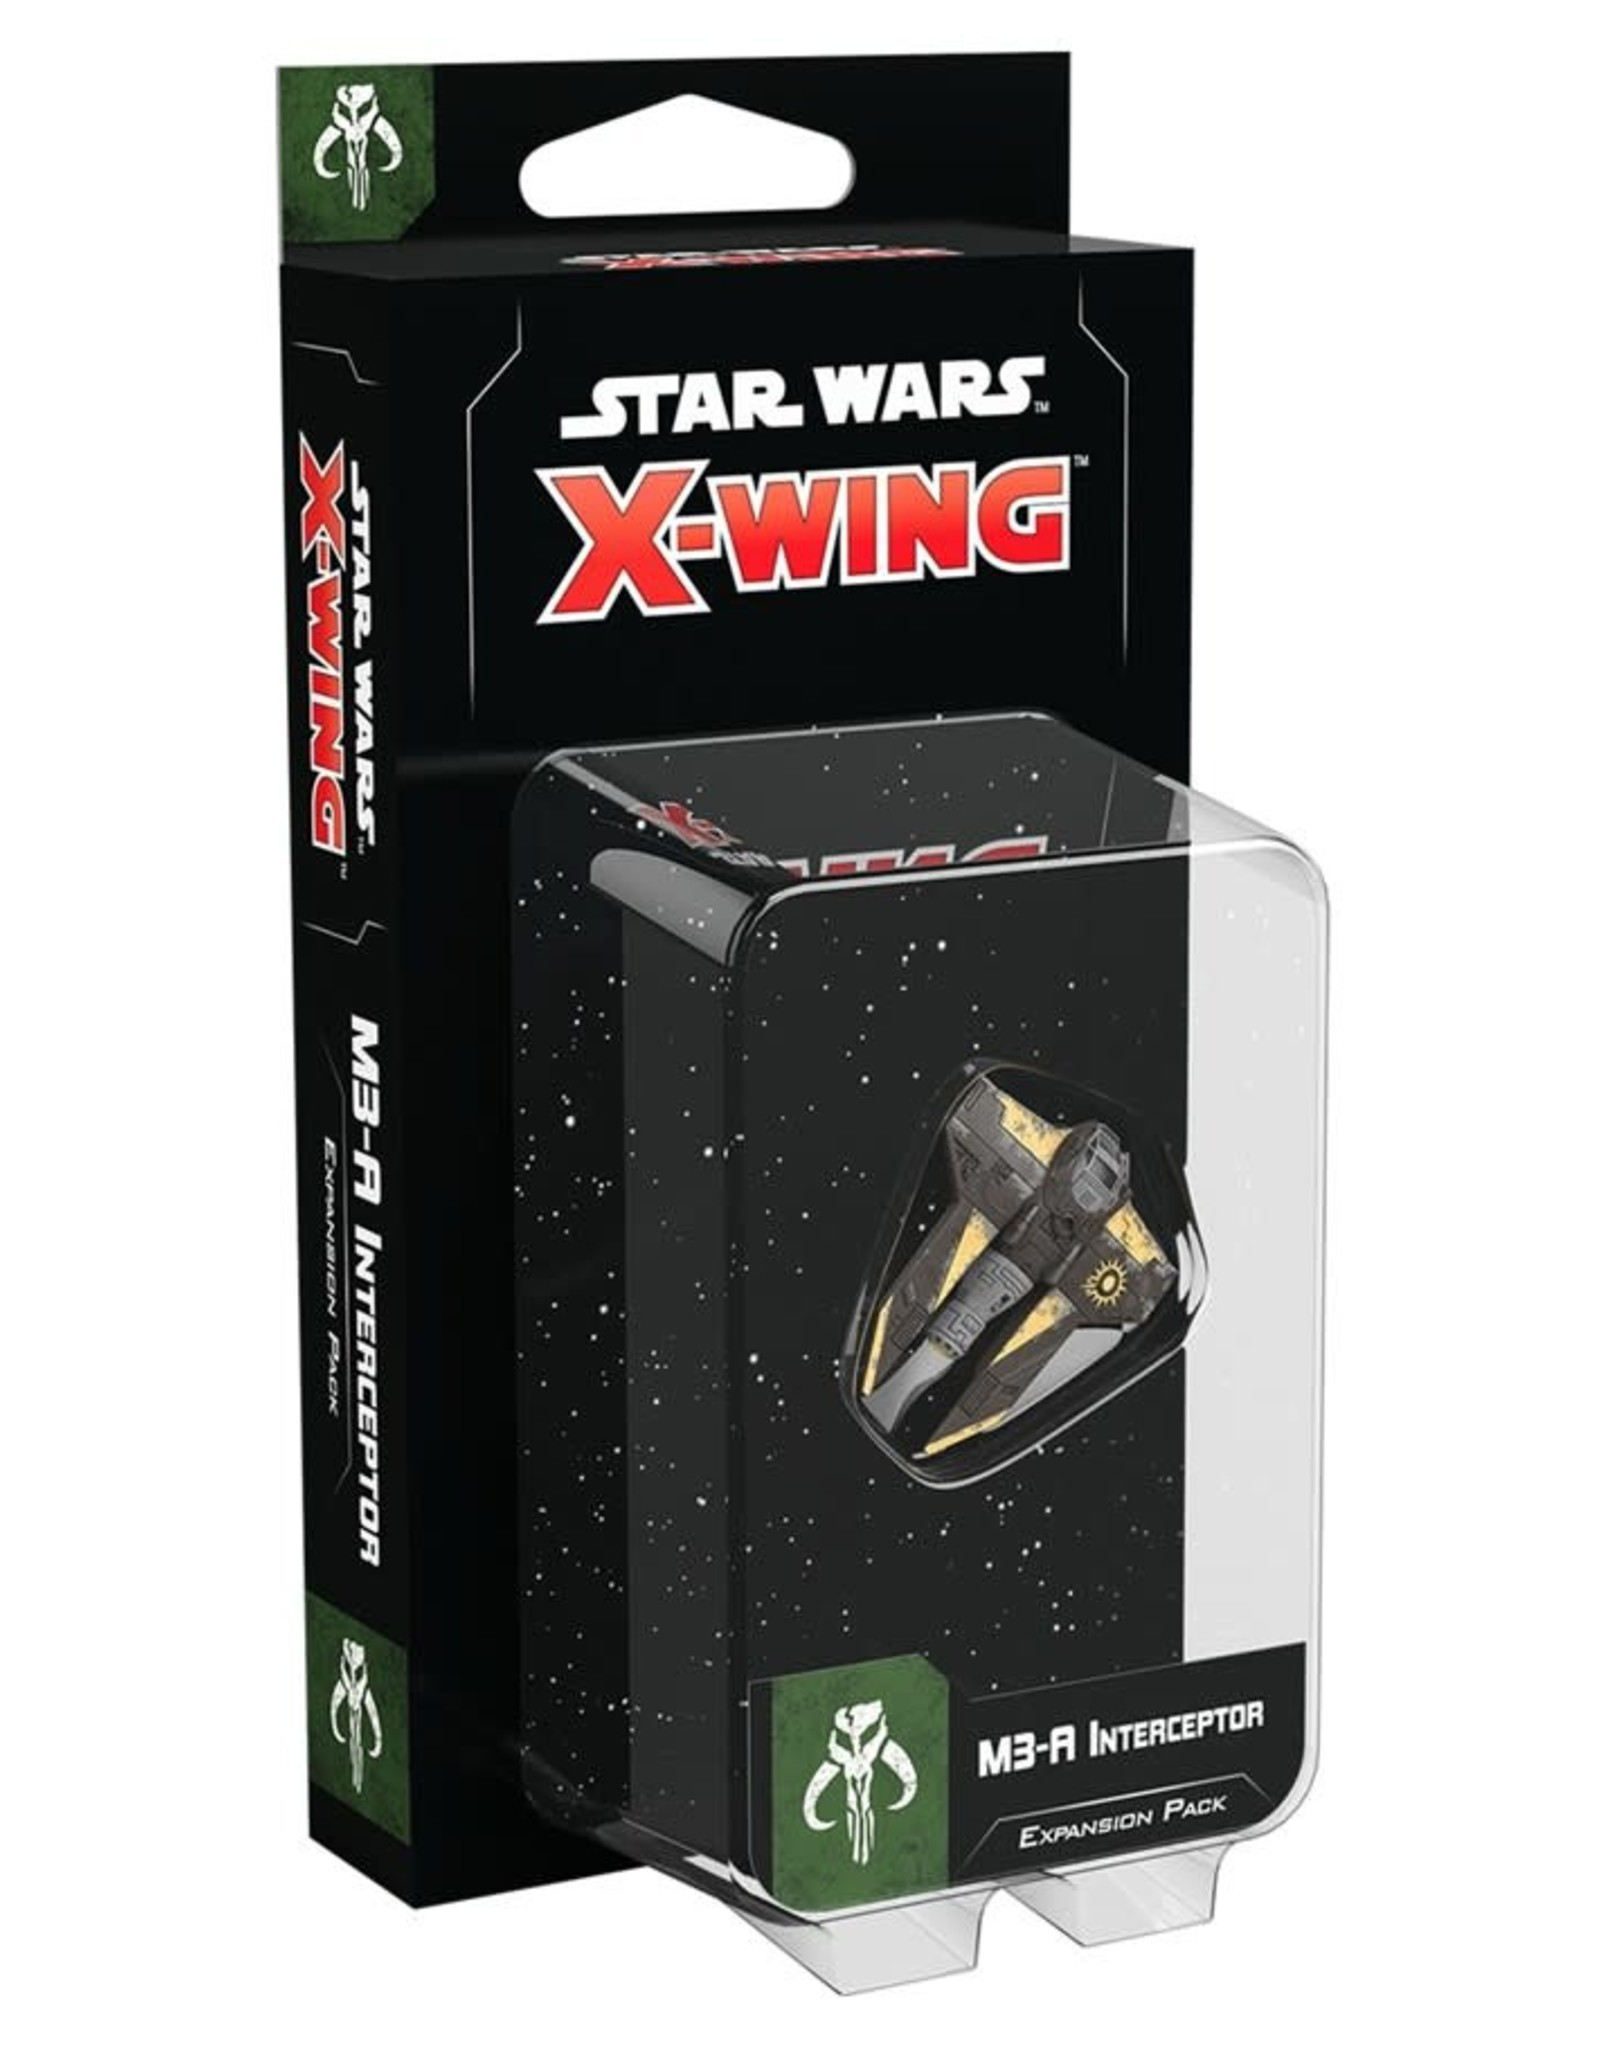 Fantasy Flight Games Star Wars X-Wing M3-A Interceptor